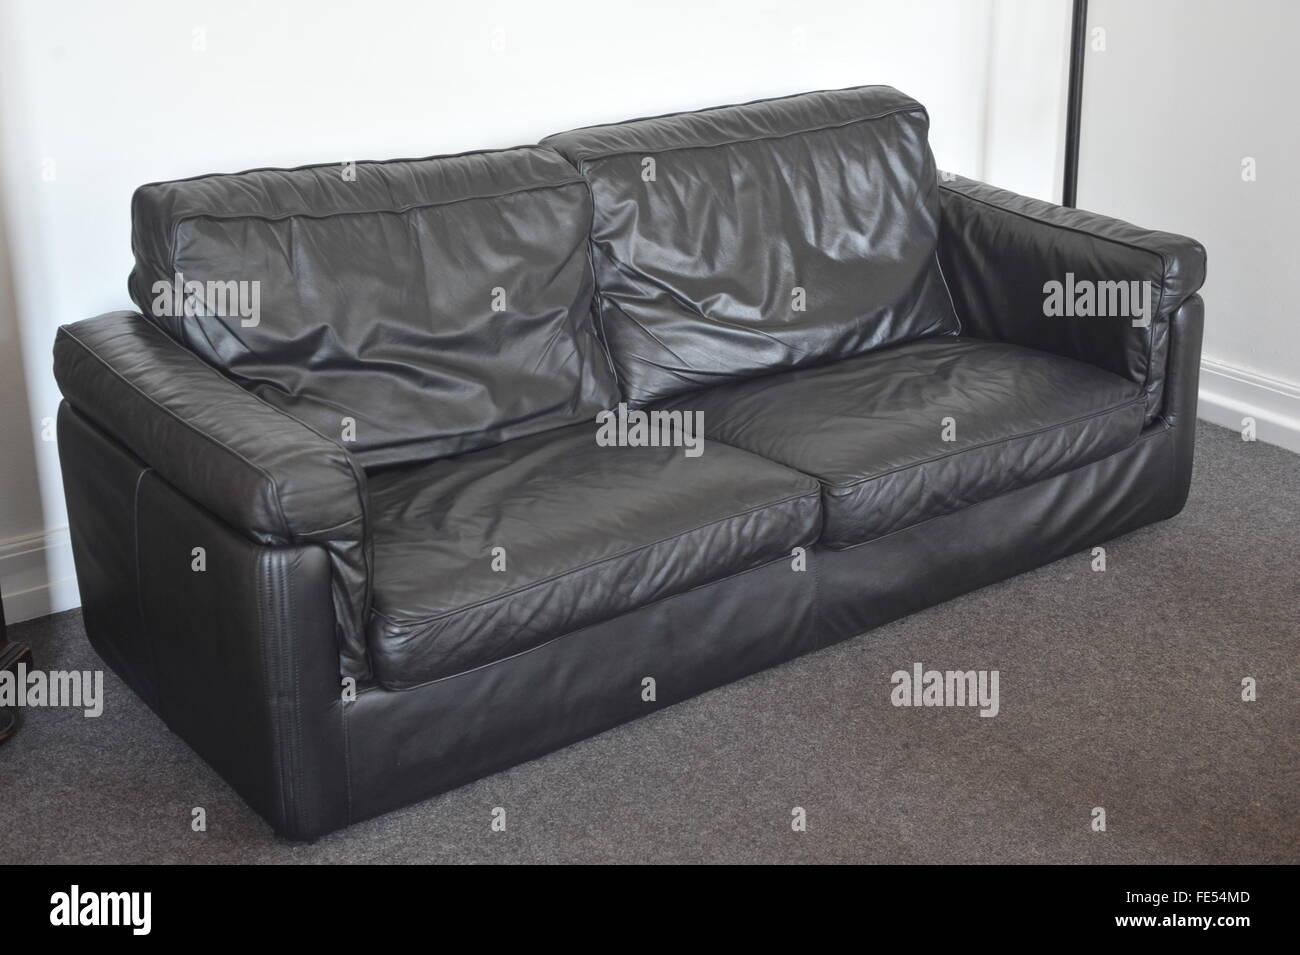 used black leather sofa, furniture, lounge